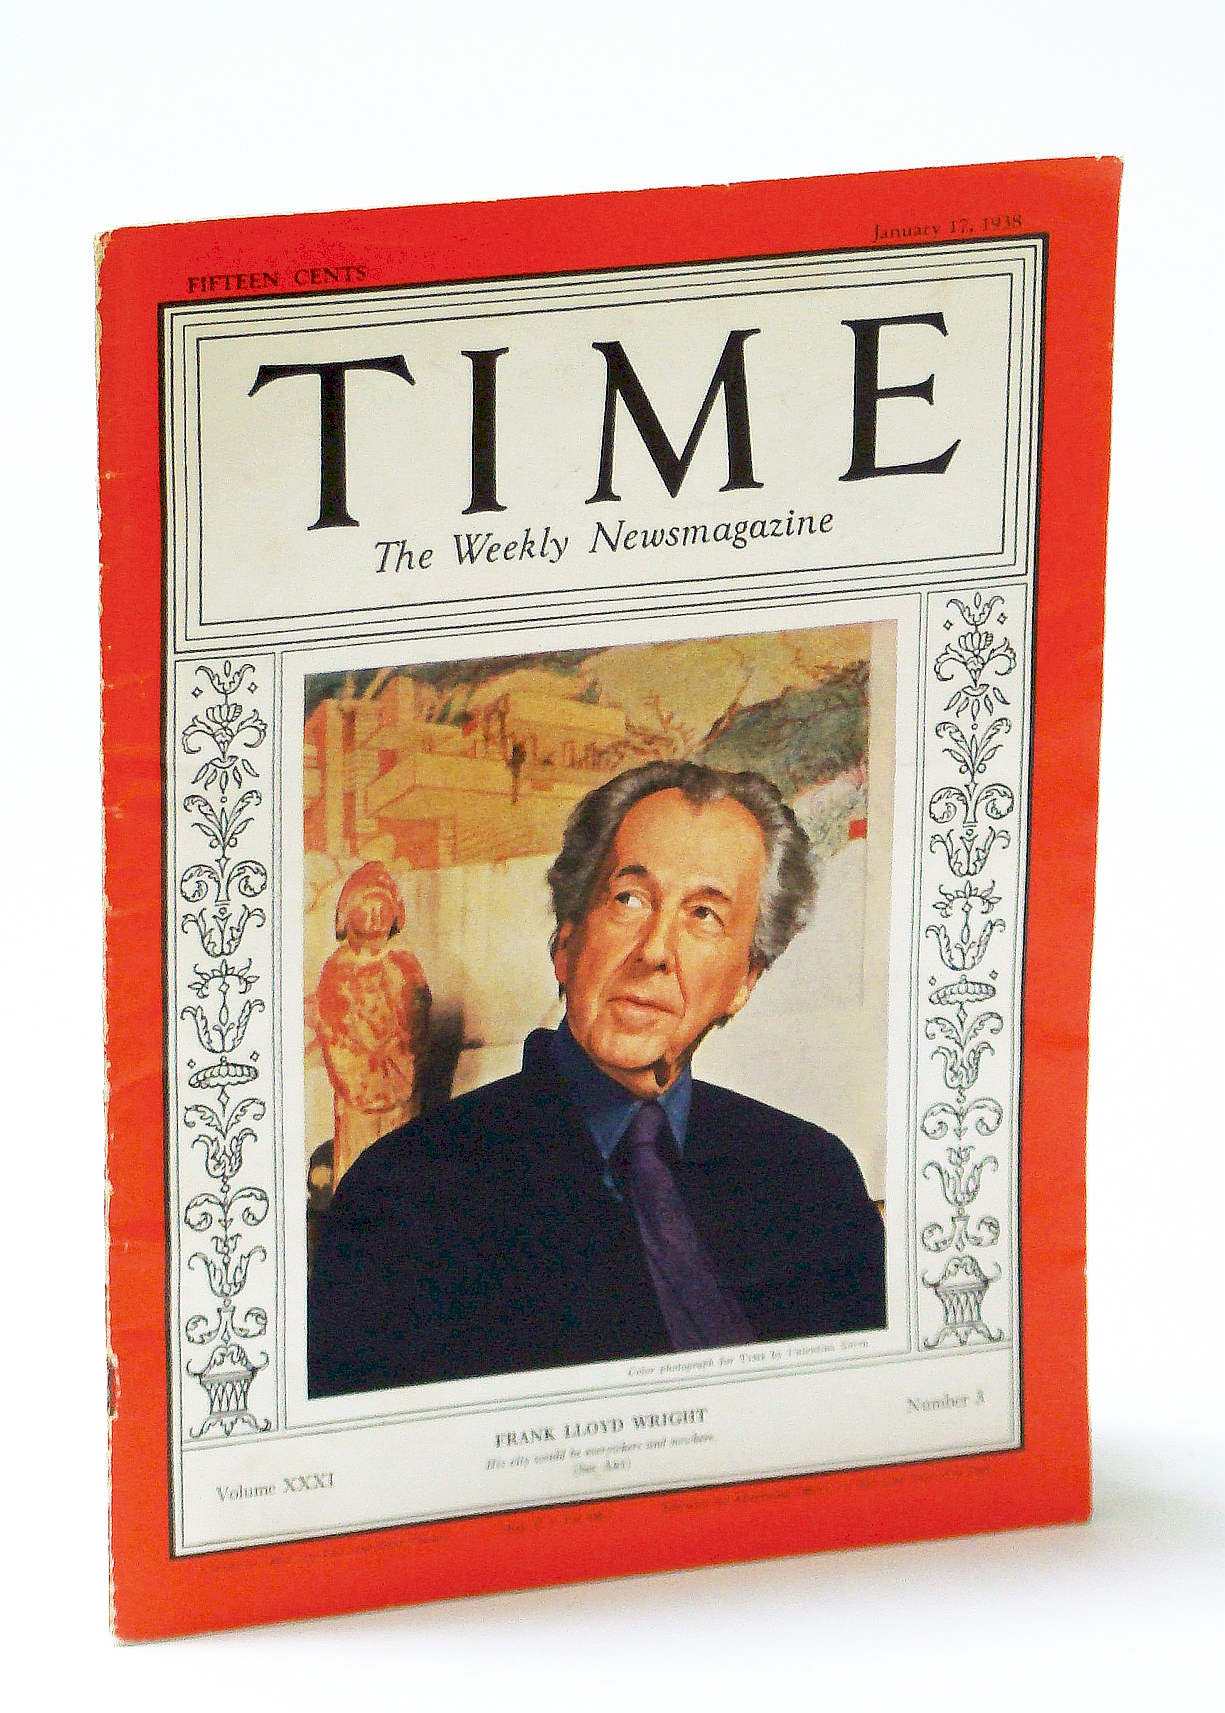 Image for Time, The Weekly Newsmagazine (U.S. Edition),  January (Jan.) 17, 1938, Volume XXXI, Number 3 - Frank Lloyd Wright Cover Photo